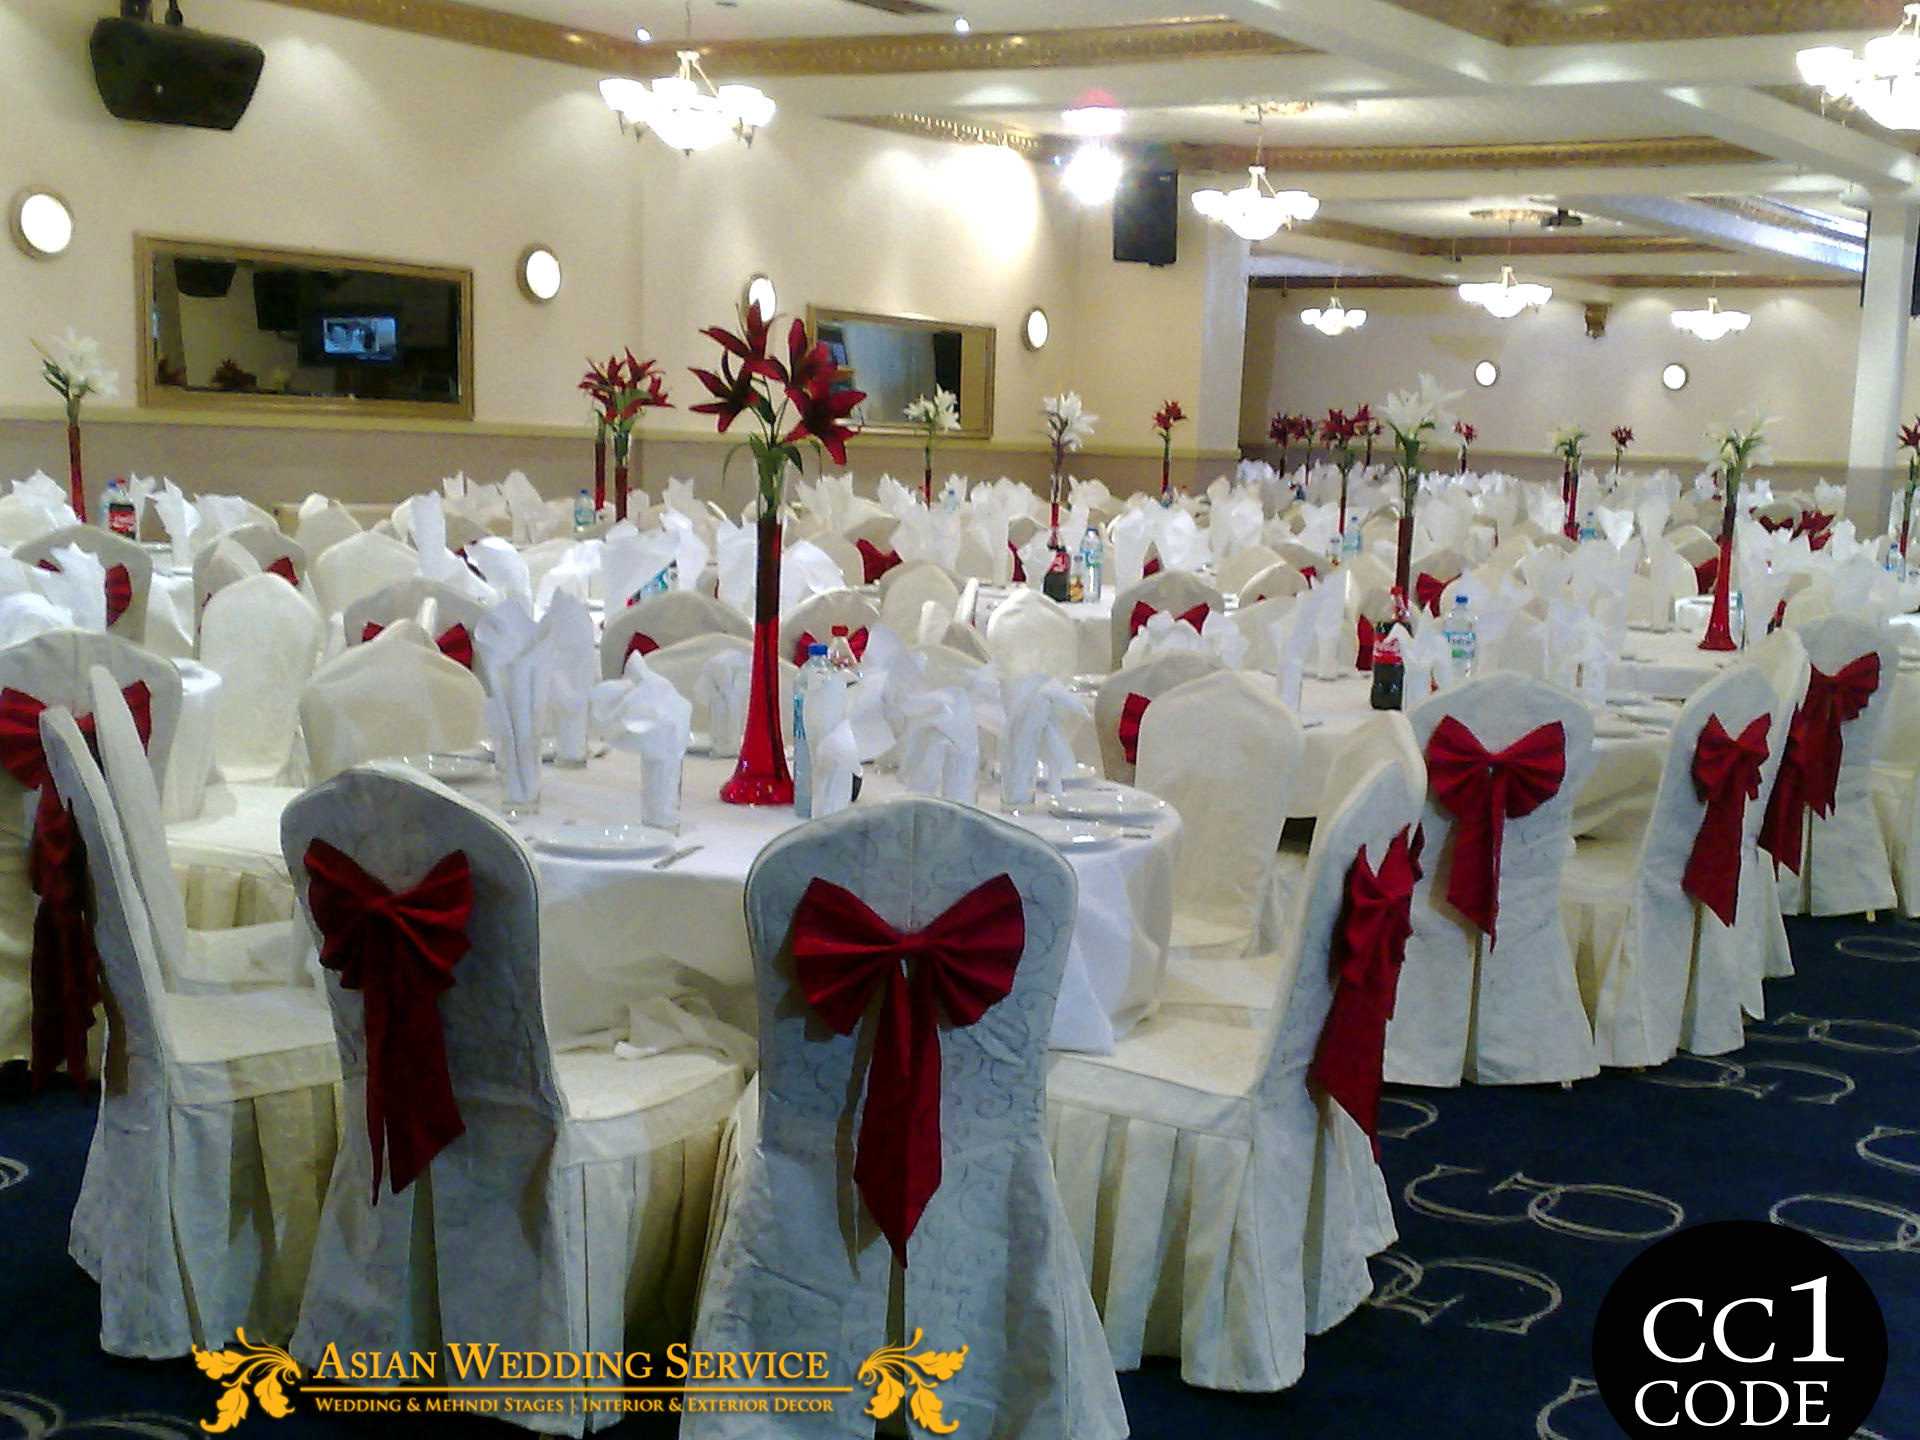 wedding chair covers east midlands roller walker transport asian stages a result of our cover service or other venue decorations such as table linen top sashes bay trees and finishing touches